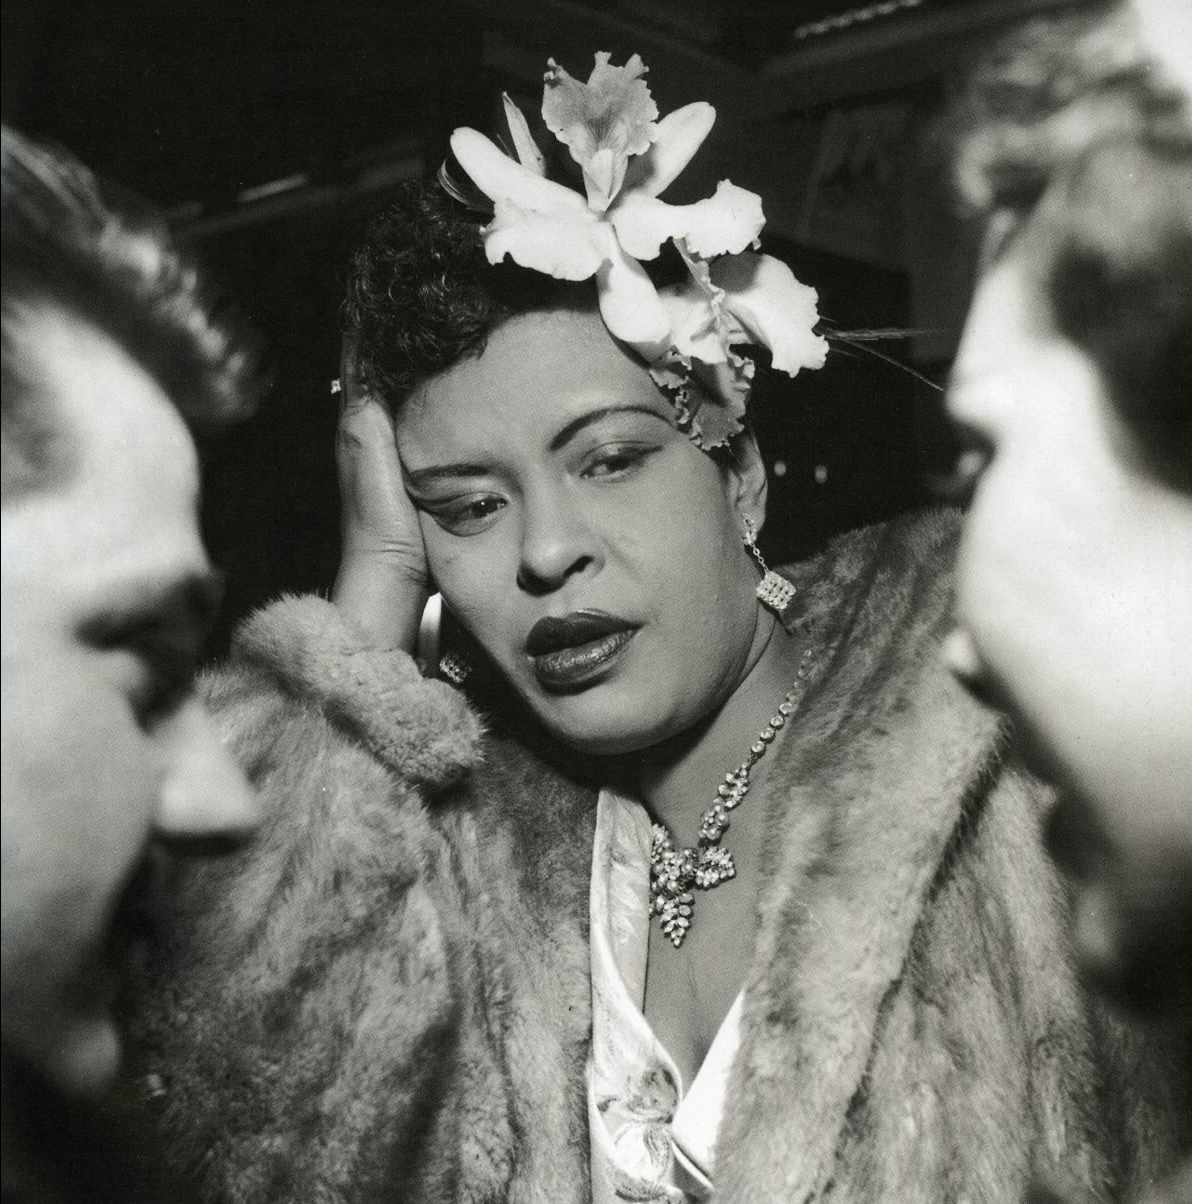 http://lounge.obviousmag.org/isso_compensa/2015/04/05/Billie_Holiday_08.jpg